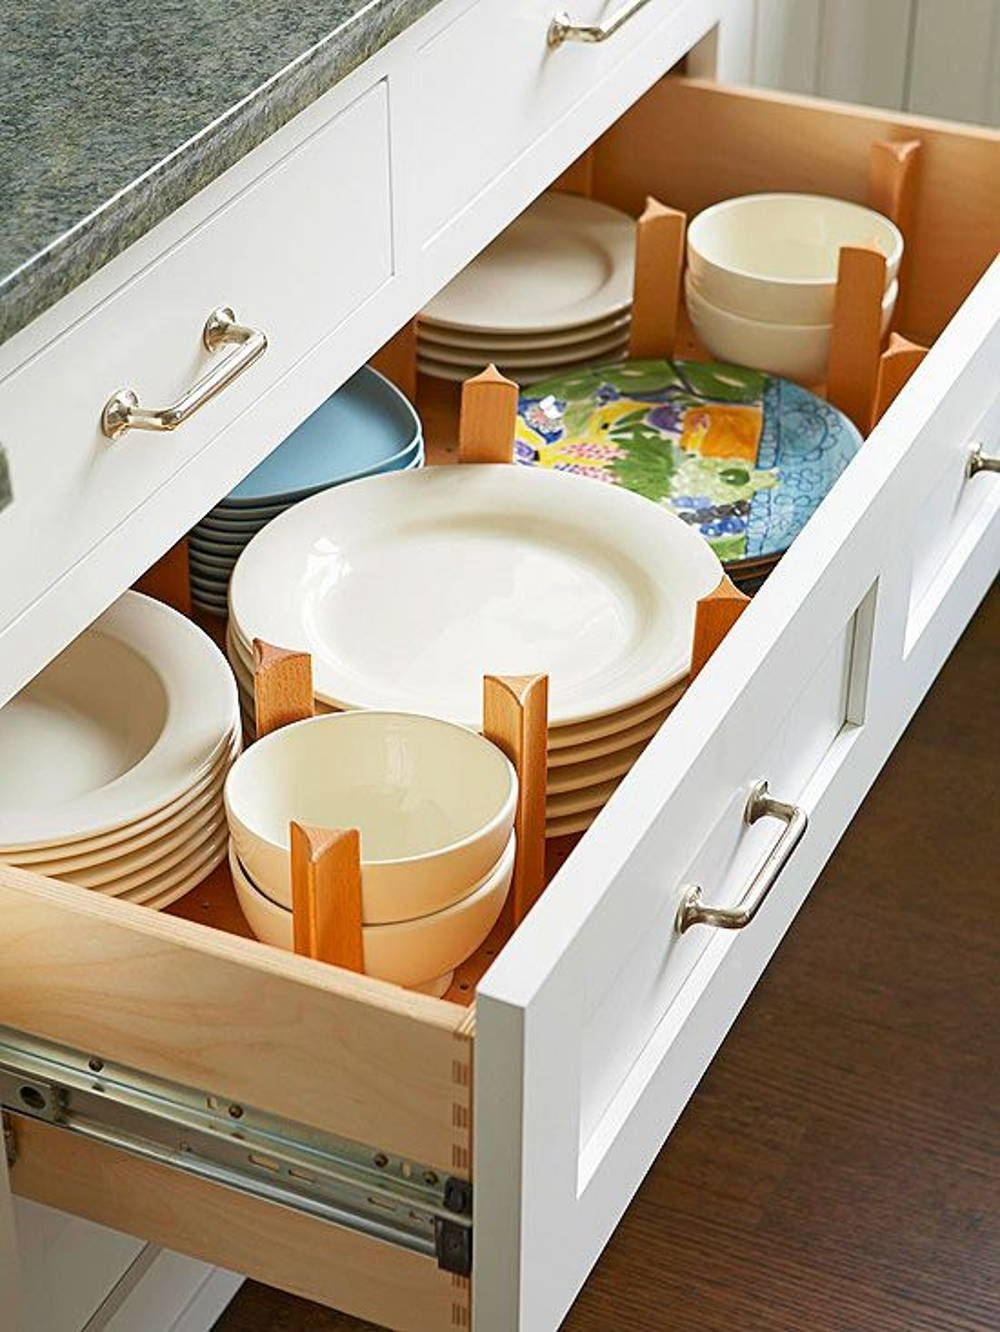 Kitchen drawer plate